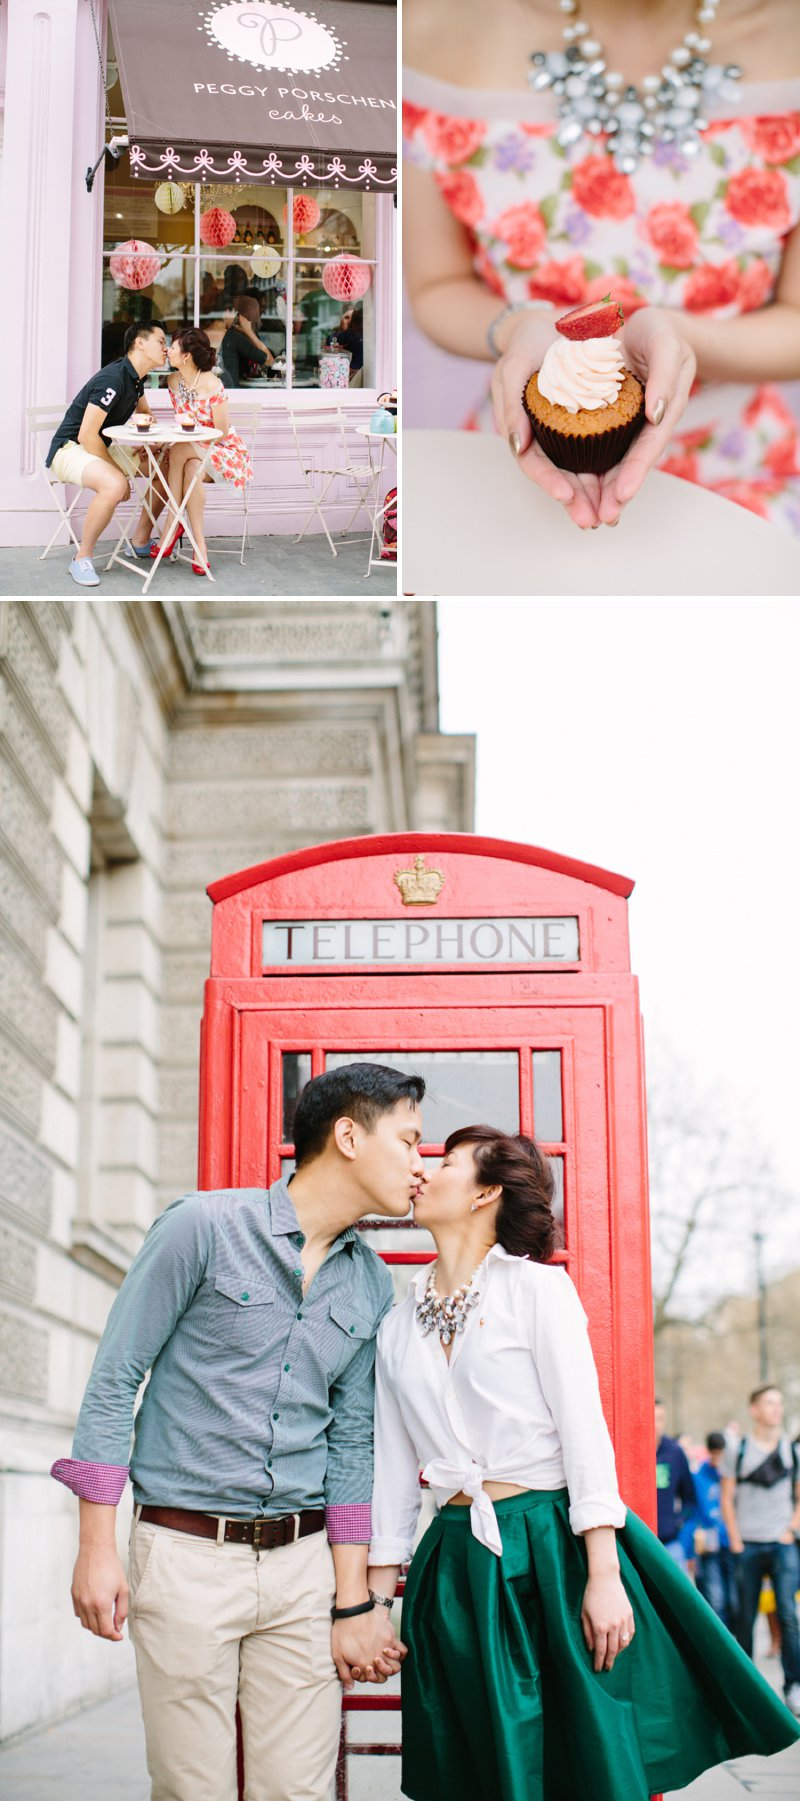 London Engagement Shoot Featuring The Houses Of Parliament, The London Eye And Peggy Porschen Cakes 7